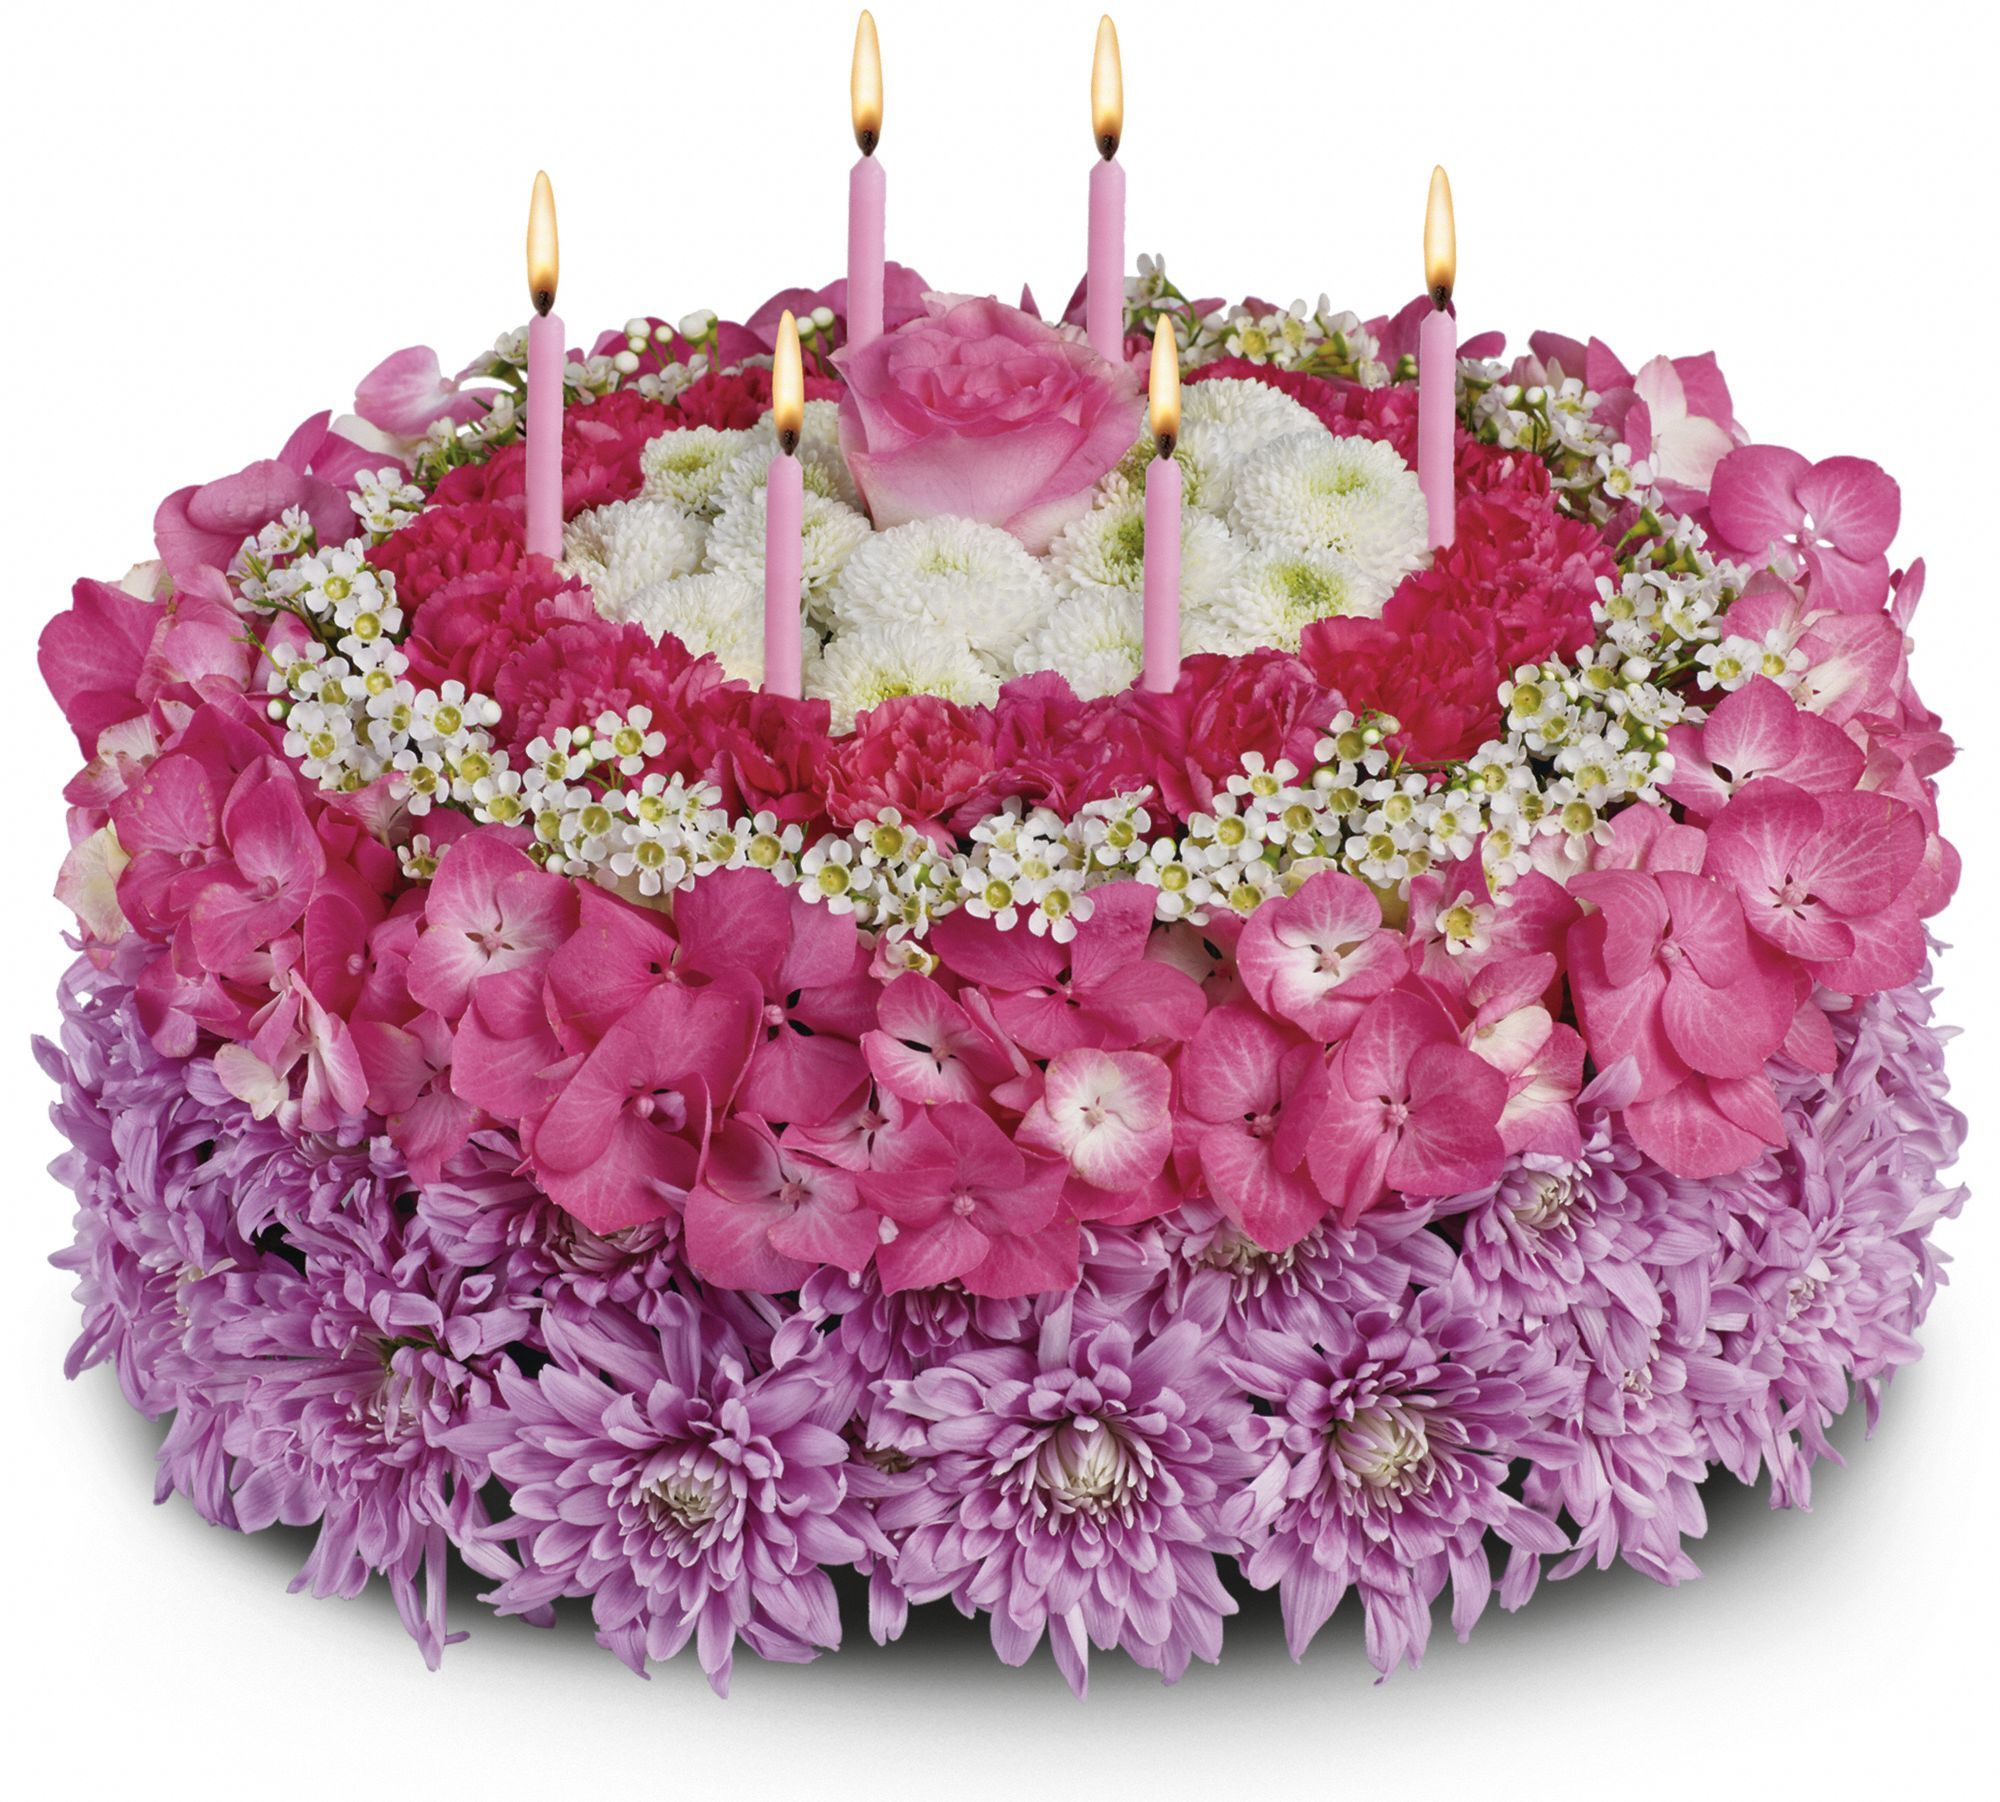 Your special day flower arrangement a fake cake pinterest your special day flowers make a wish instead of a calorie packed cake send the birthday star a birthday cake of flowers izmirmasajfo Images